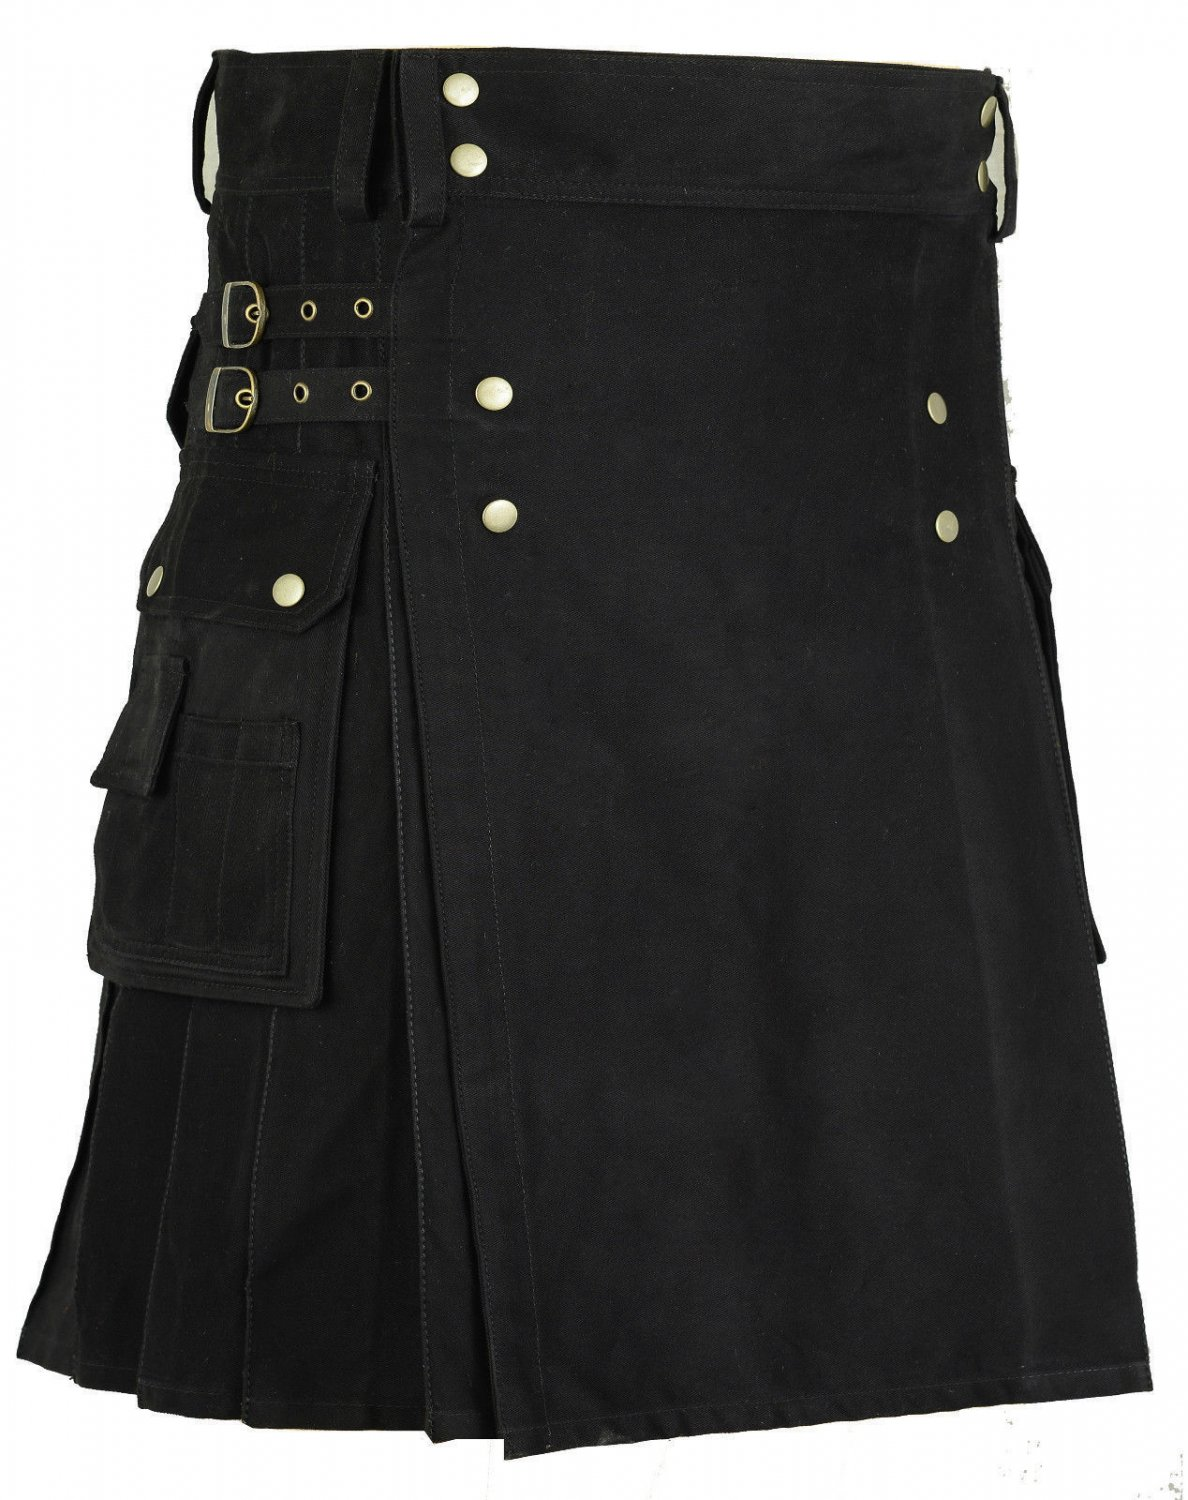 Size 50 New Scottish Cotton Kilt Deluxe Goth Outdoor Utility Kilts Highland Skirt